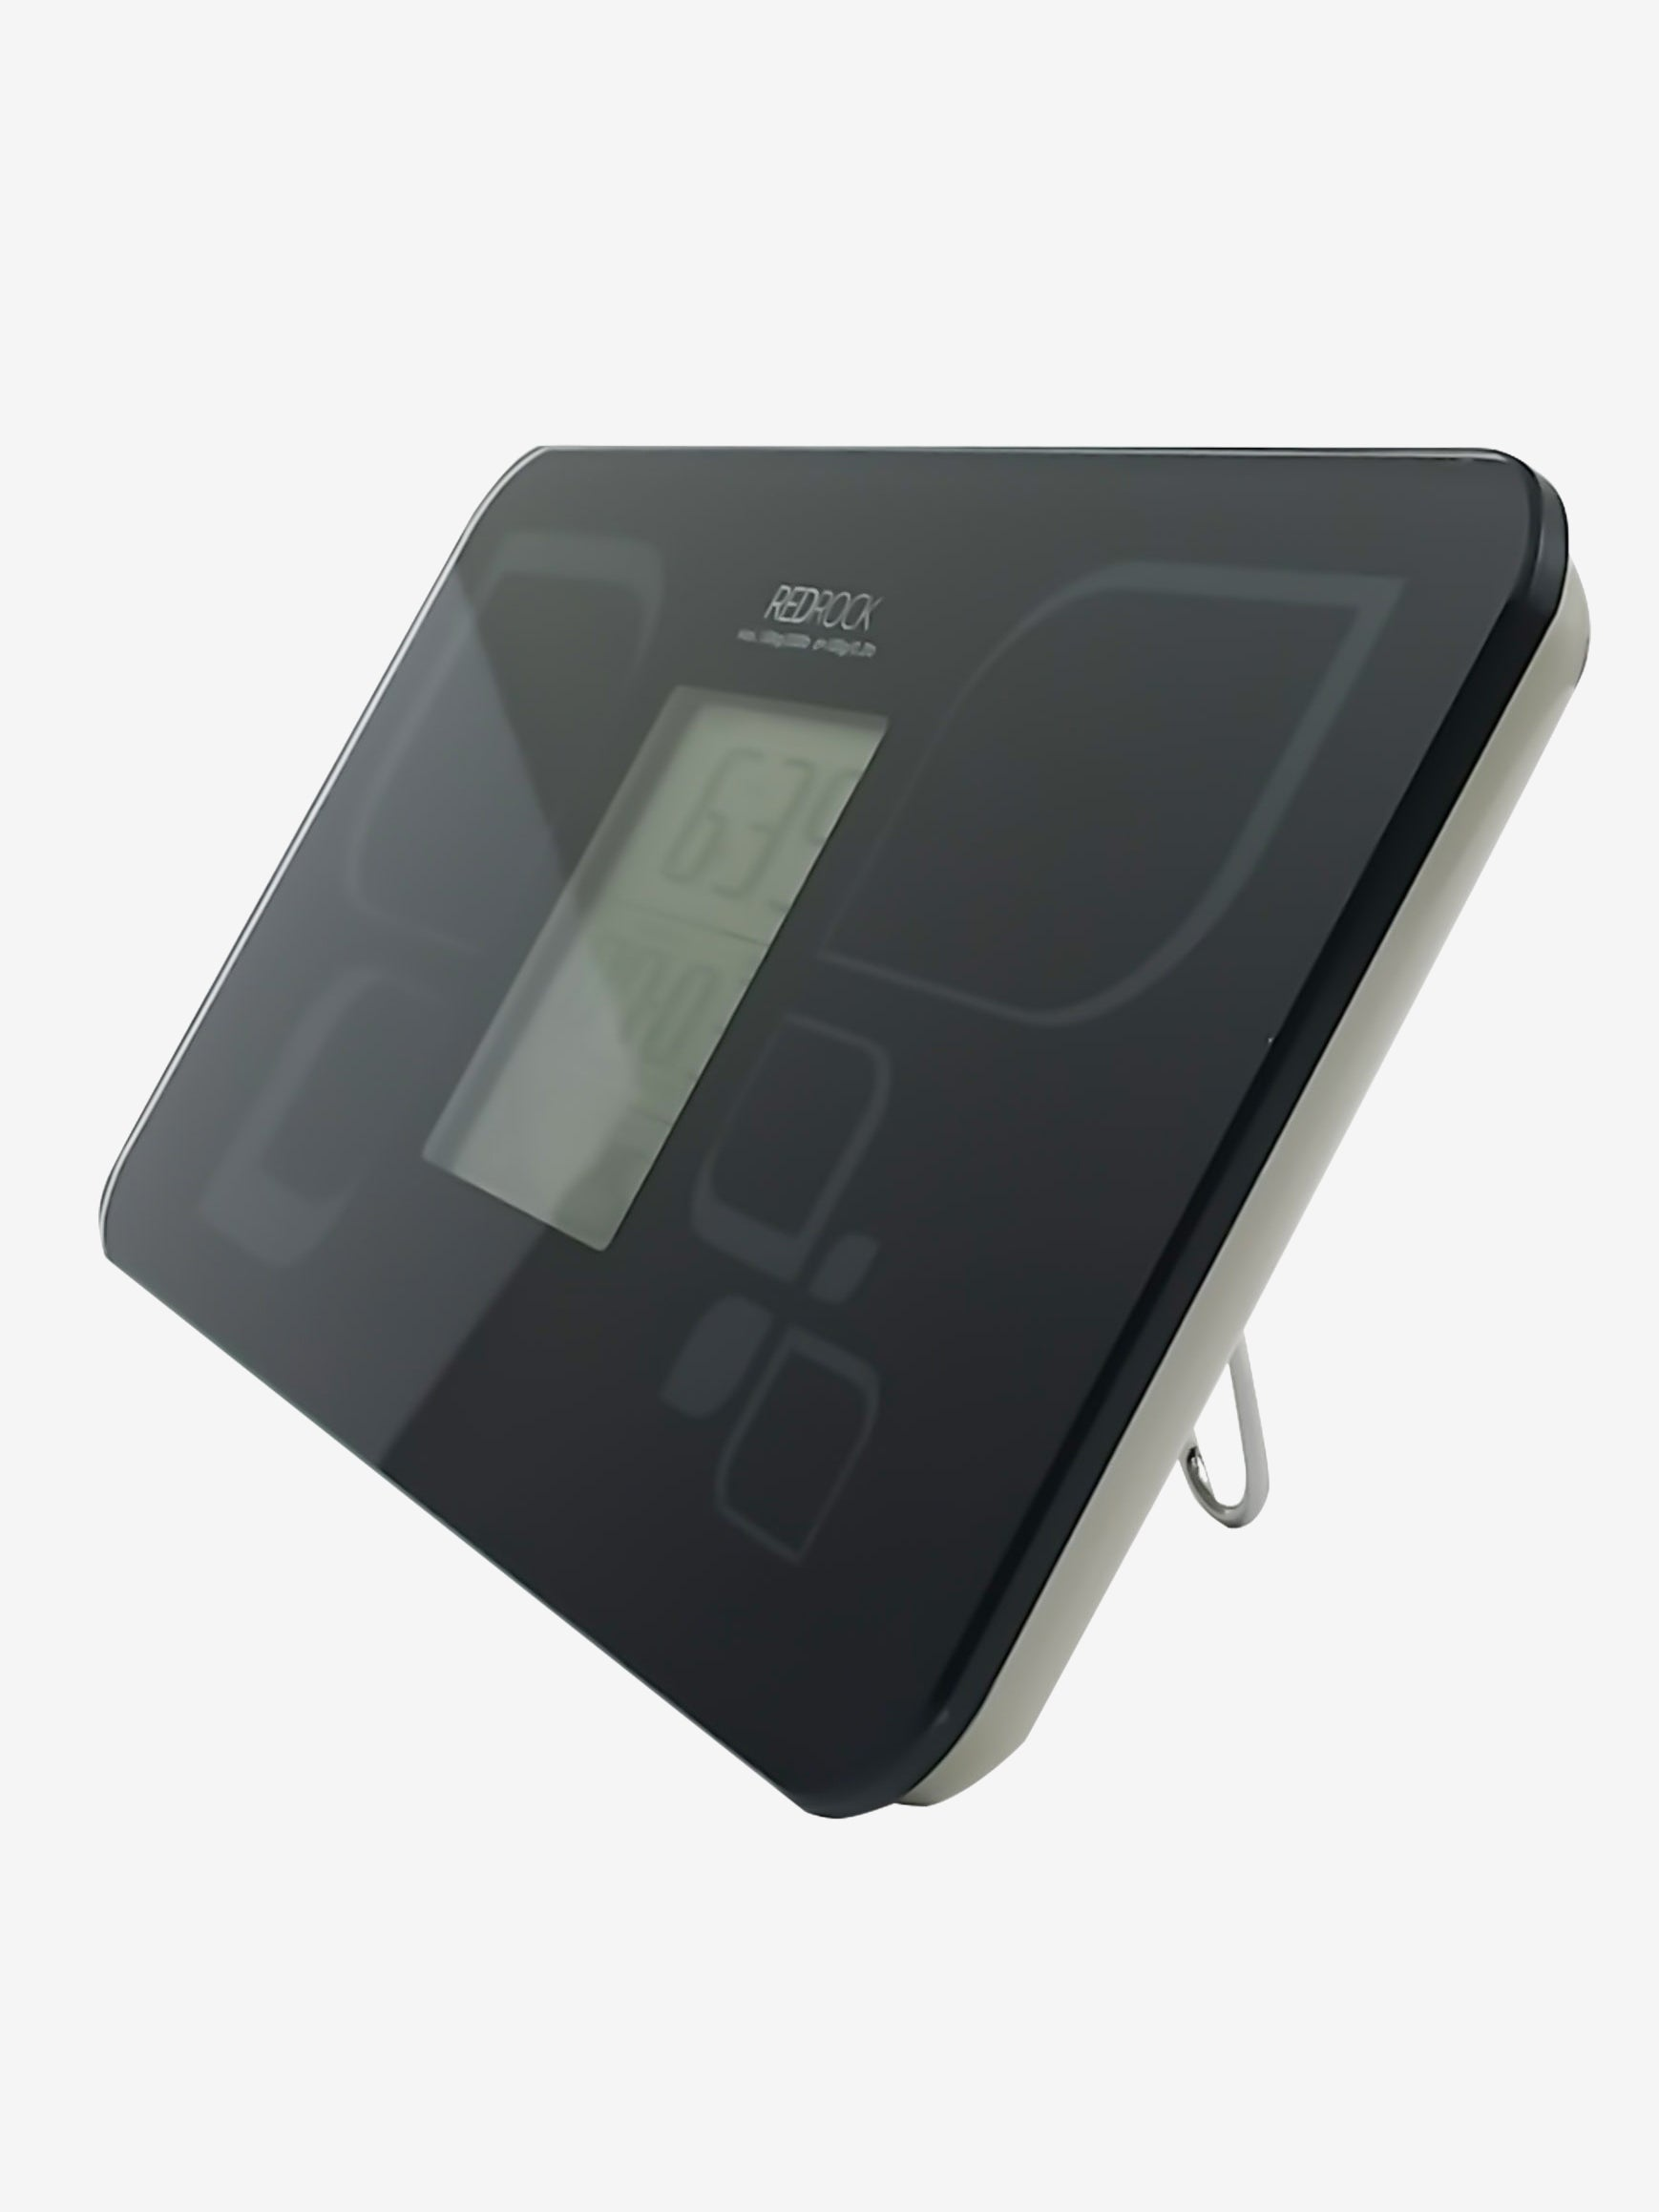 6-in-1 Digital Calendar Scale in Black